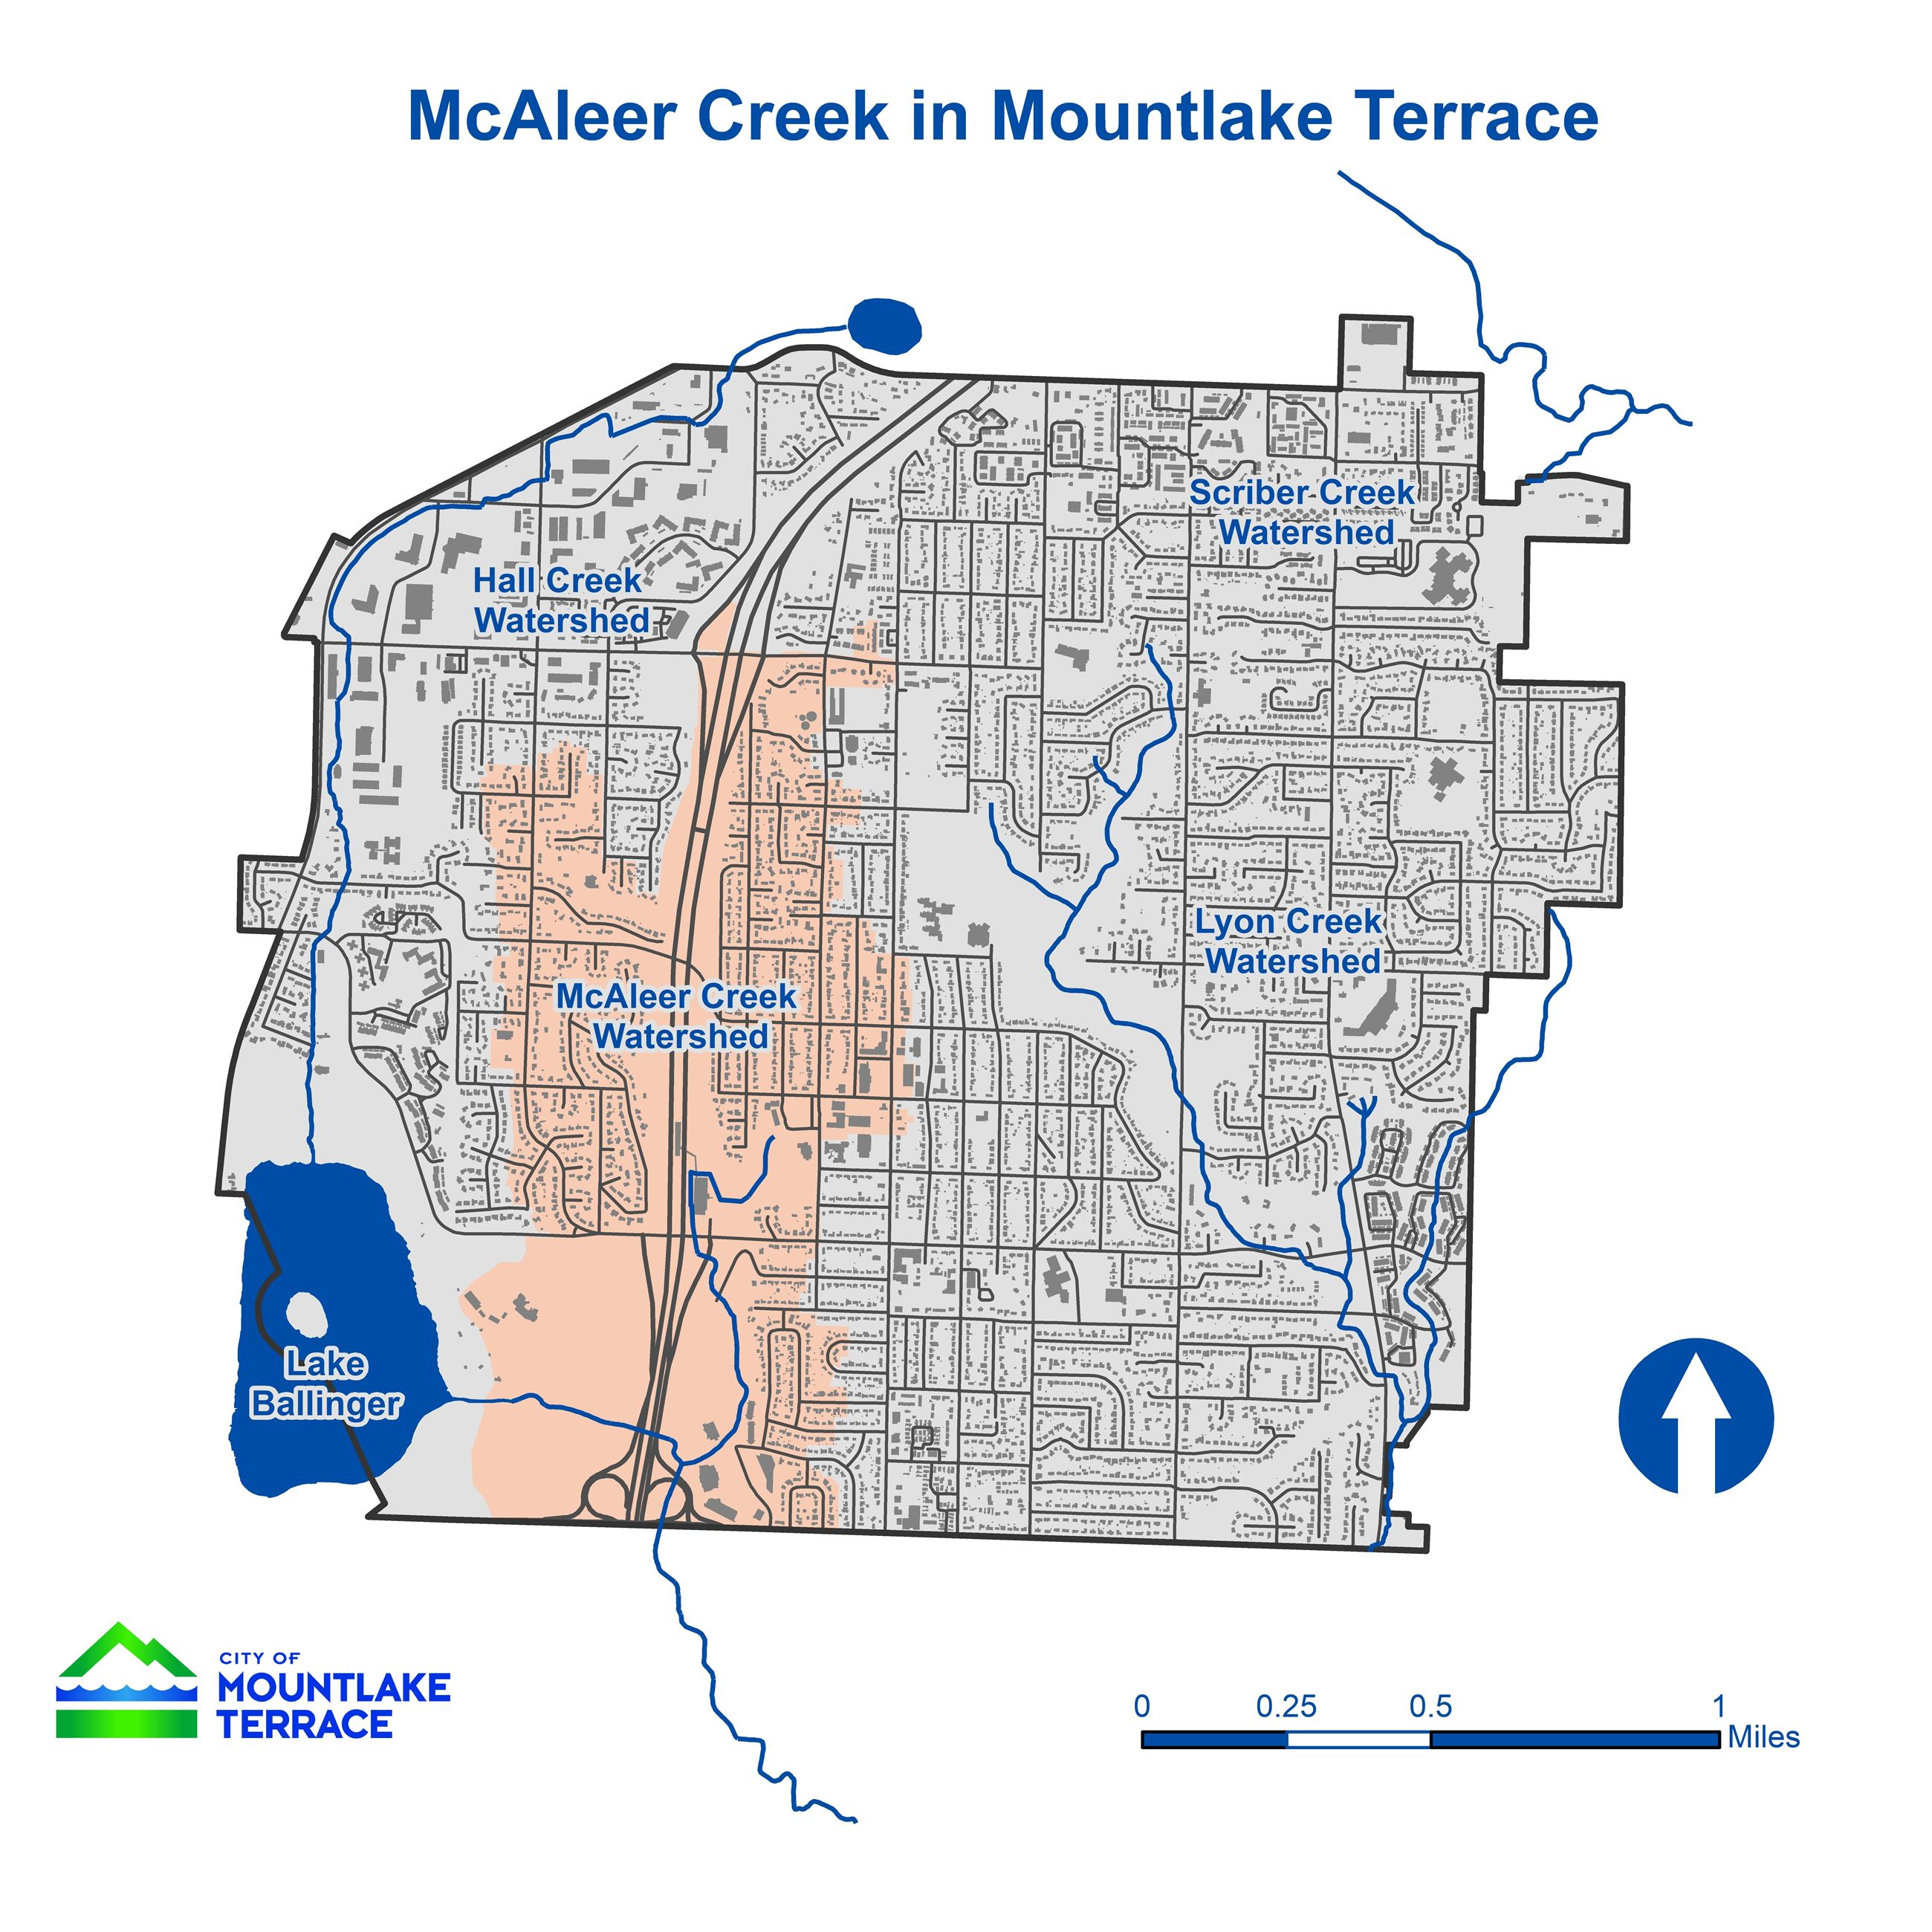 McAleer Creek Watershed